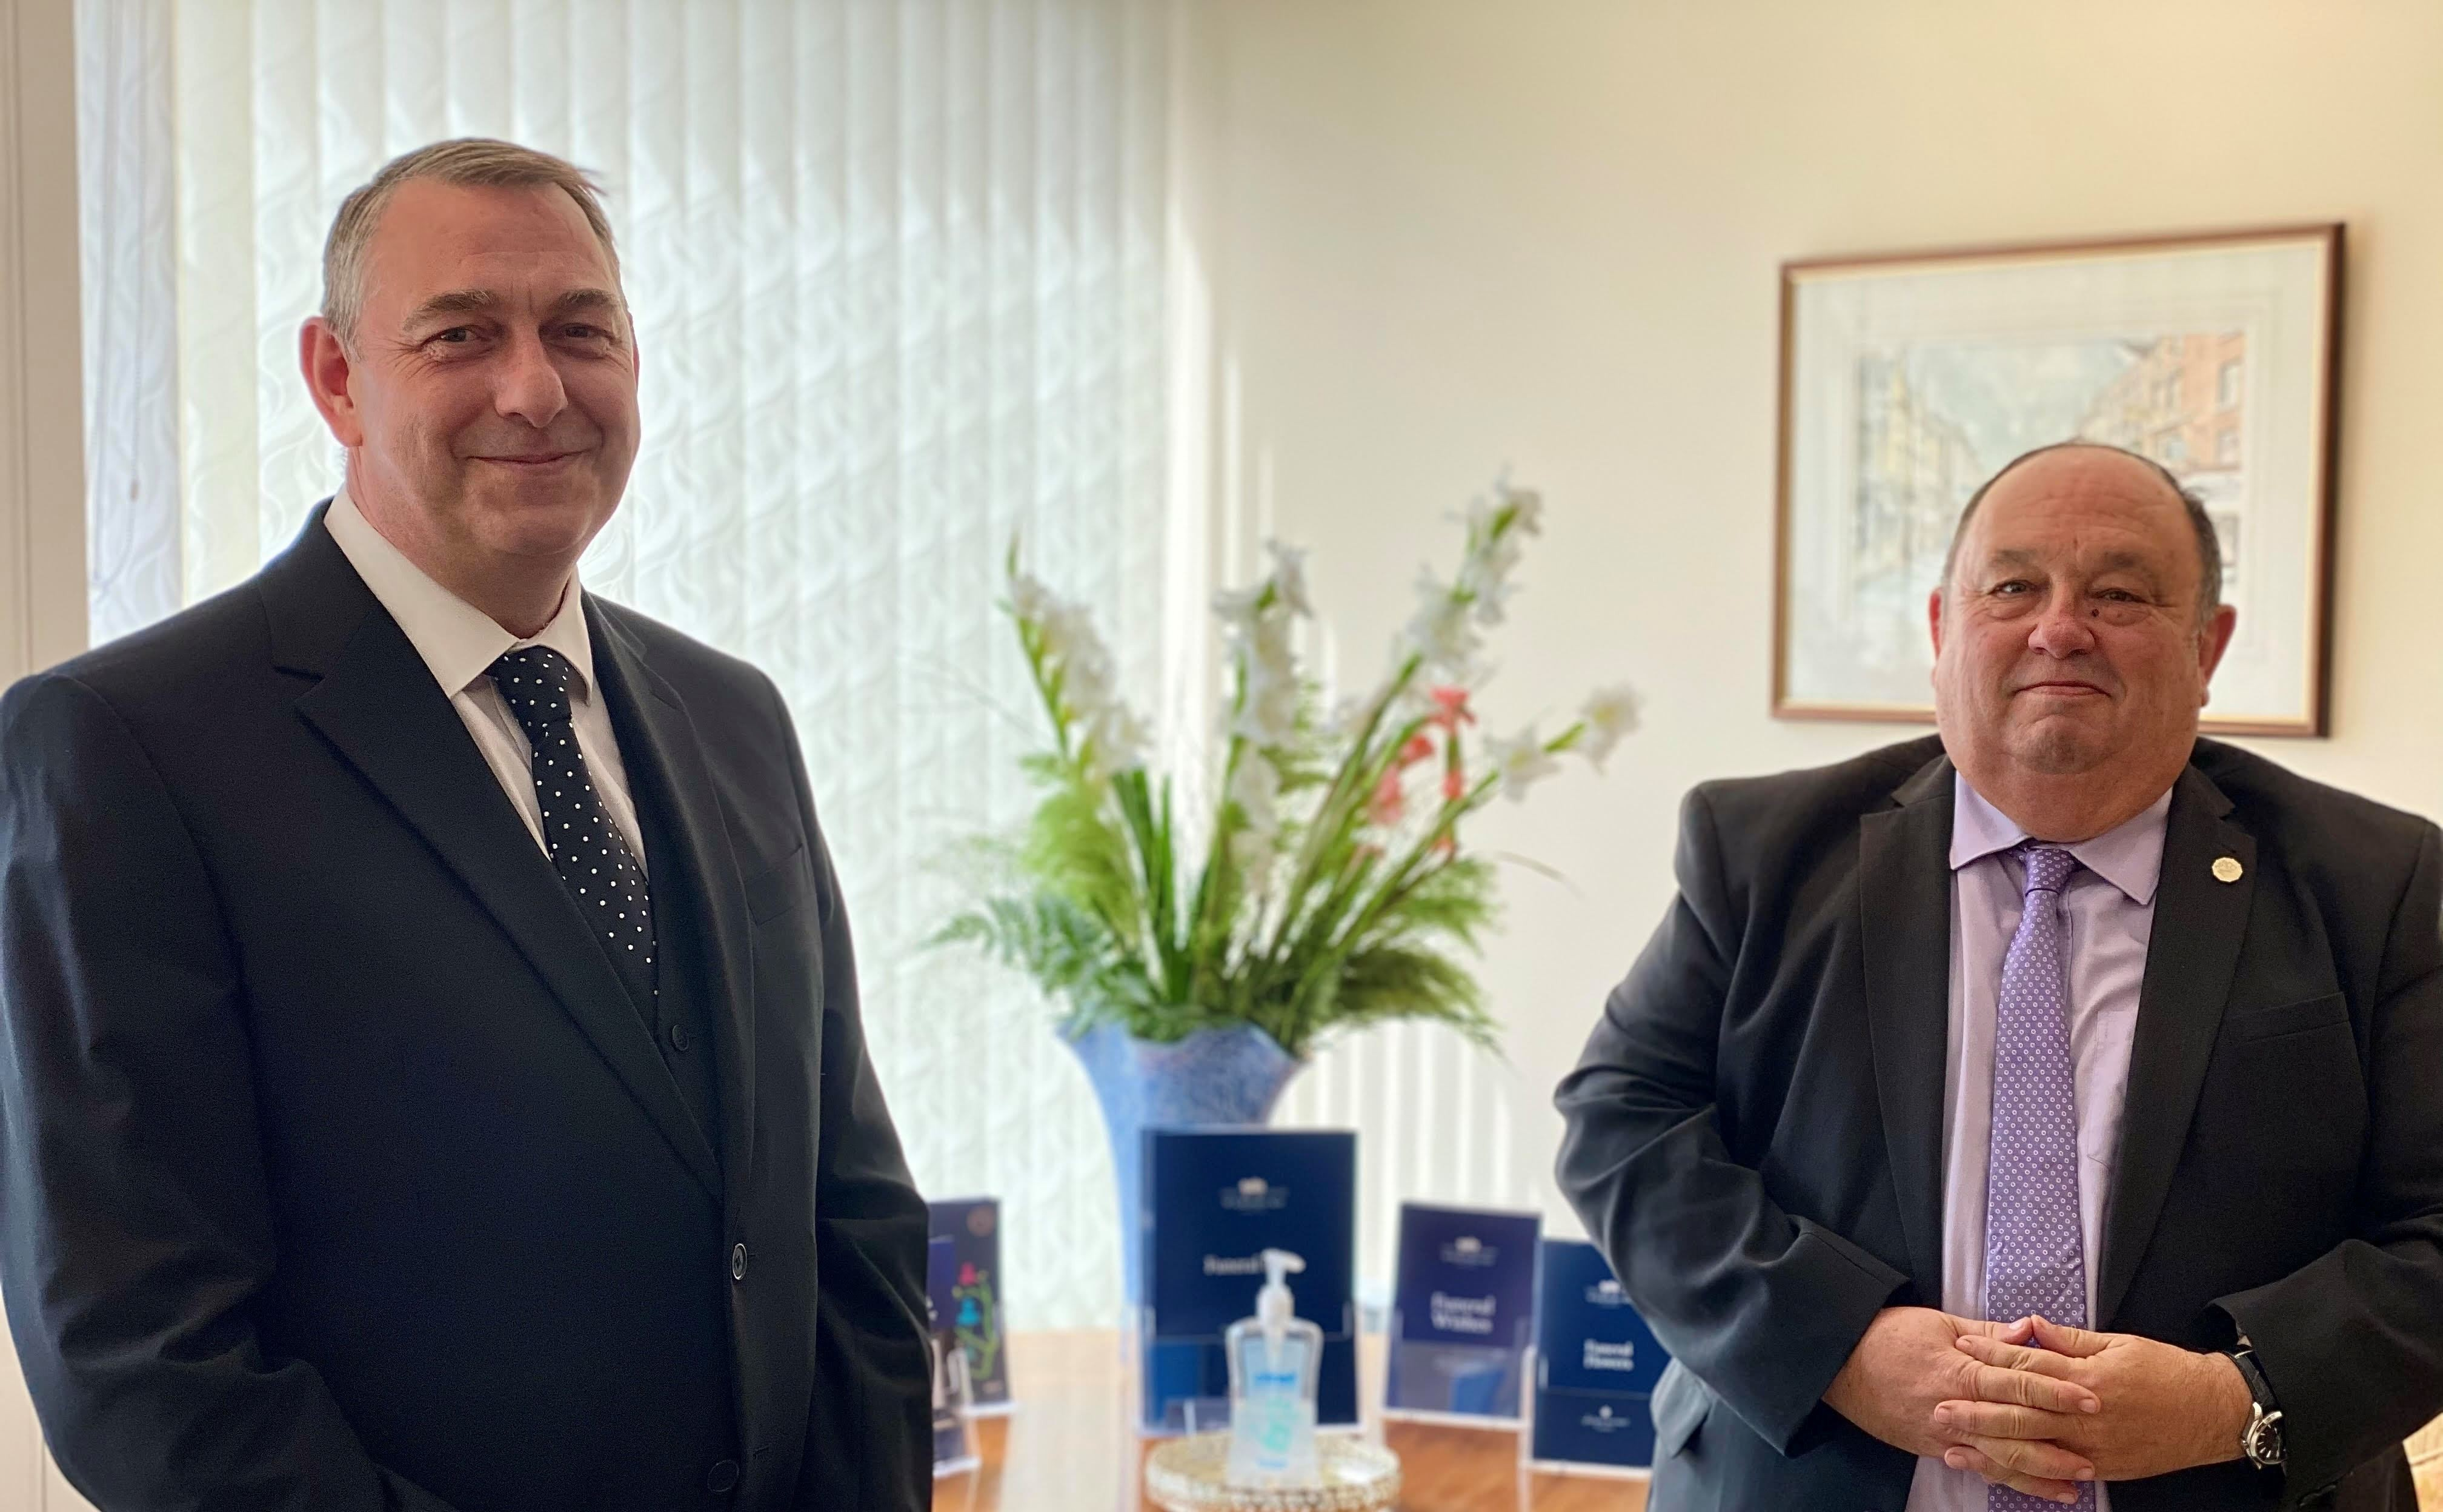 Funeral director joins with estate planning expert to offer free advice sessions